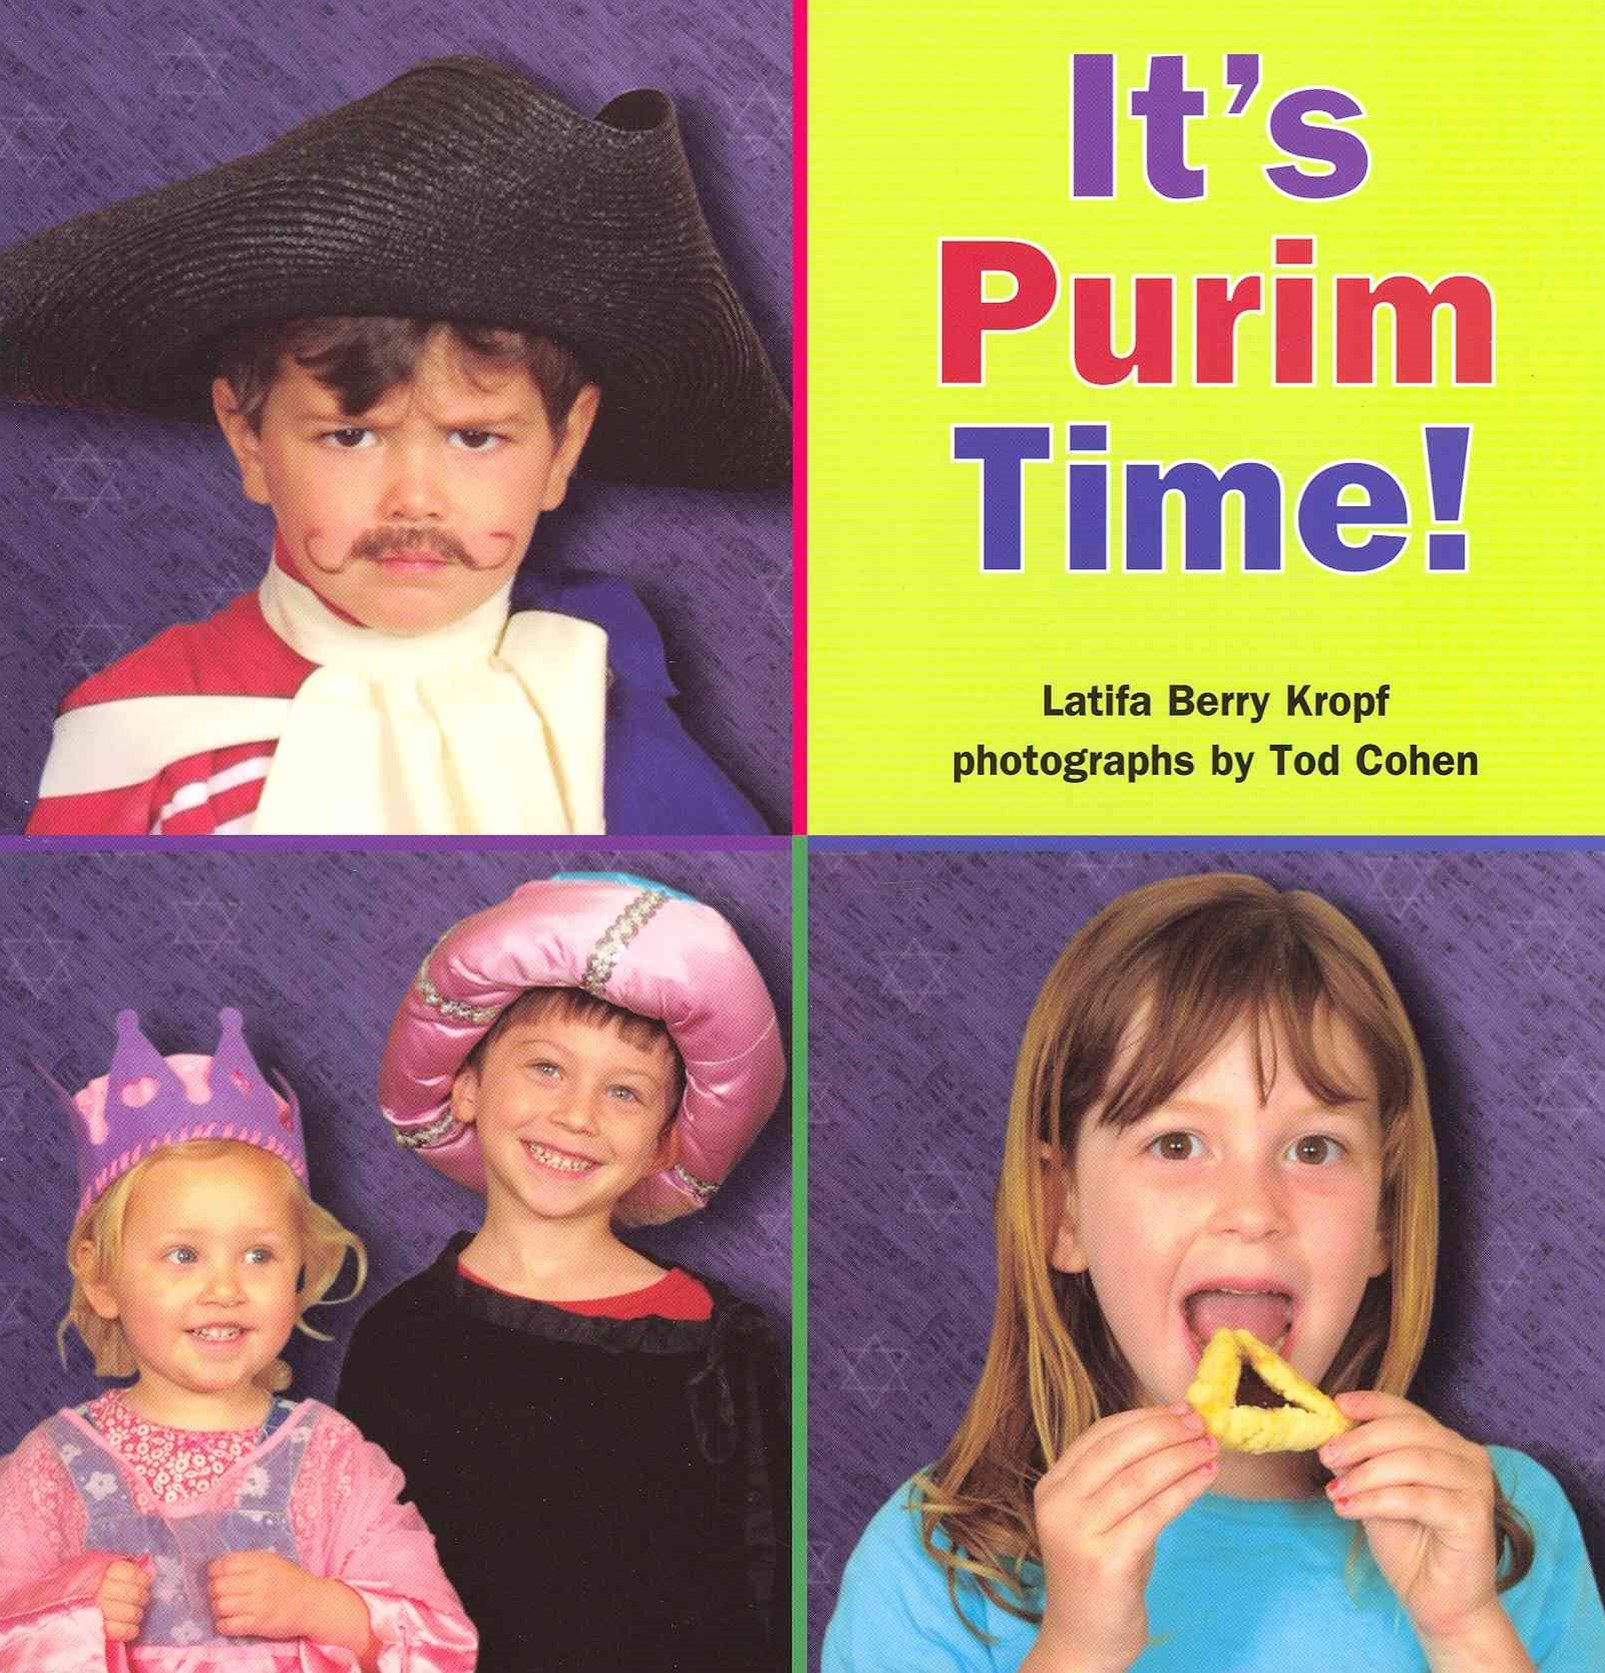 It's Purim Time!